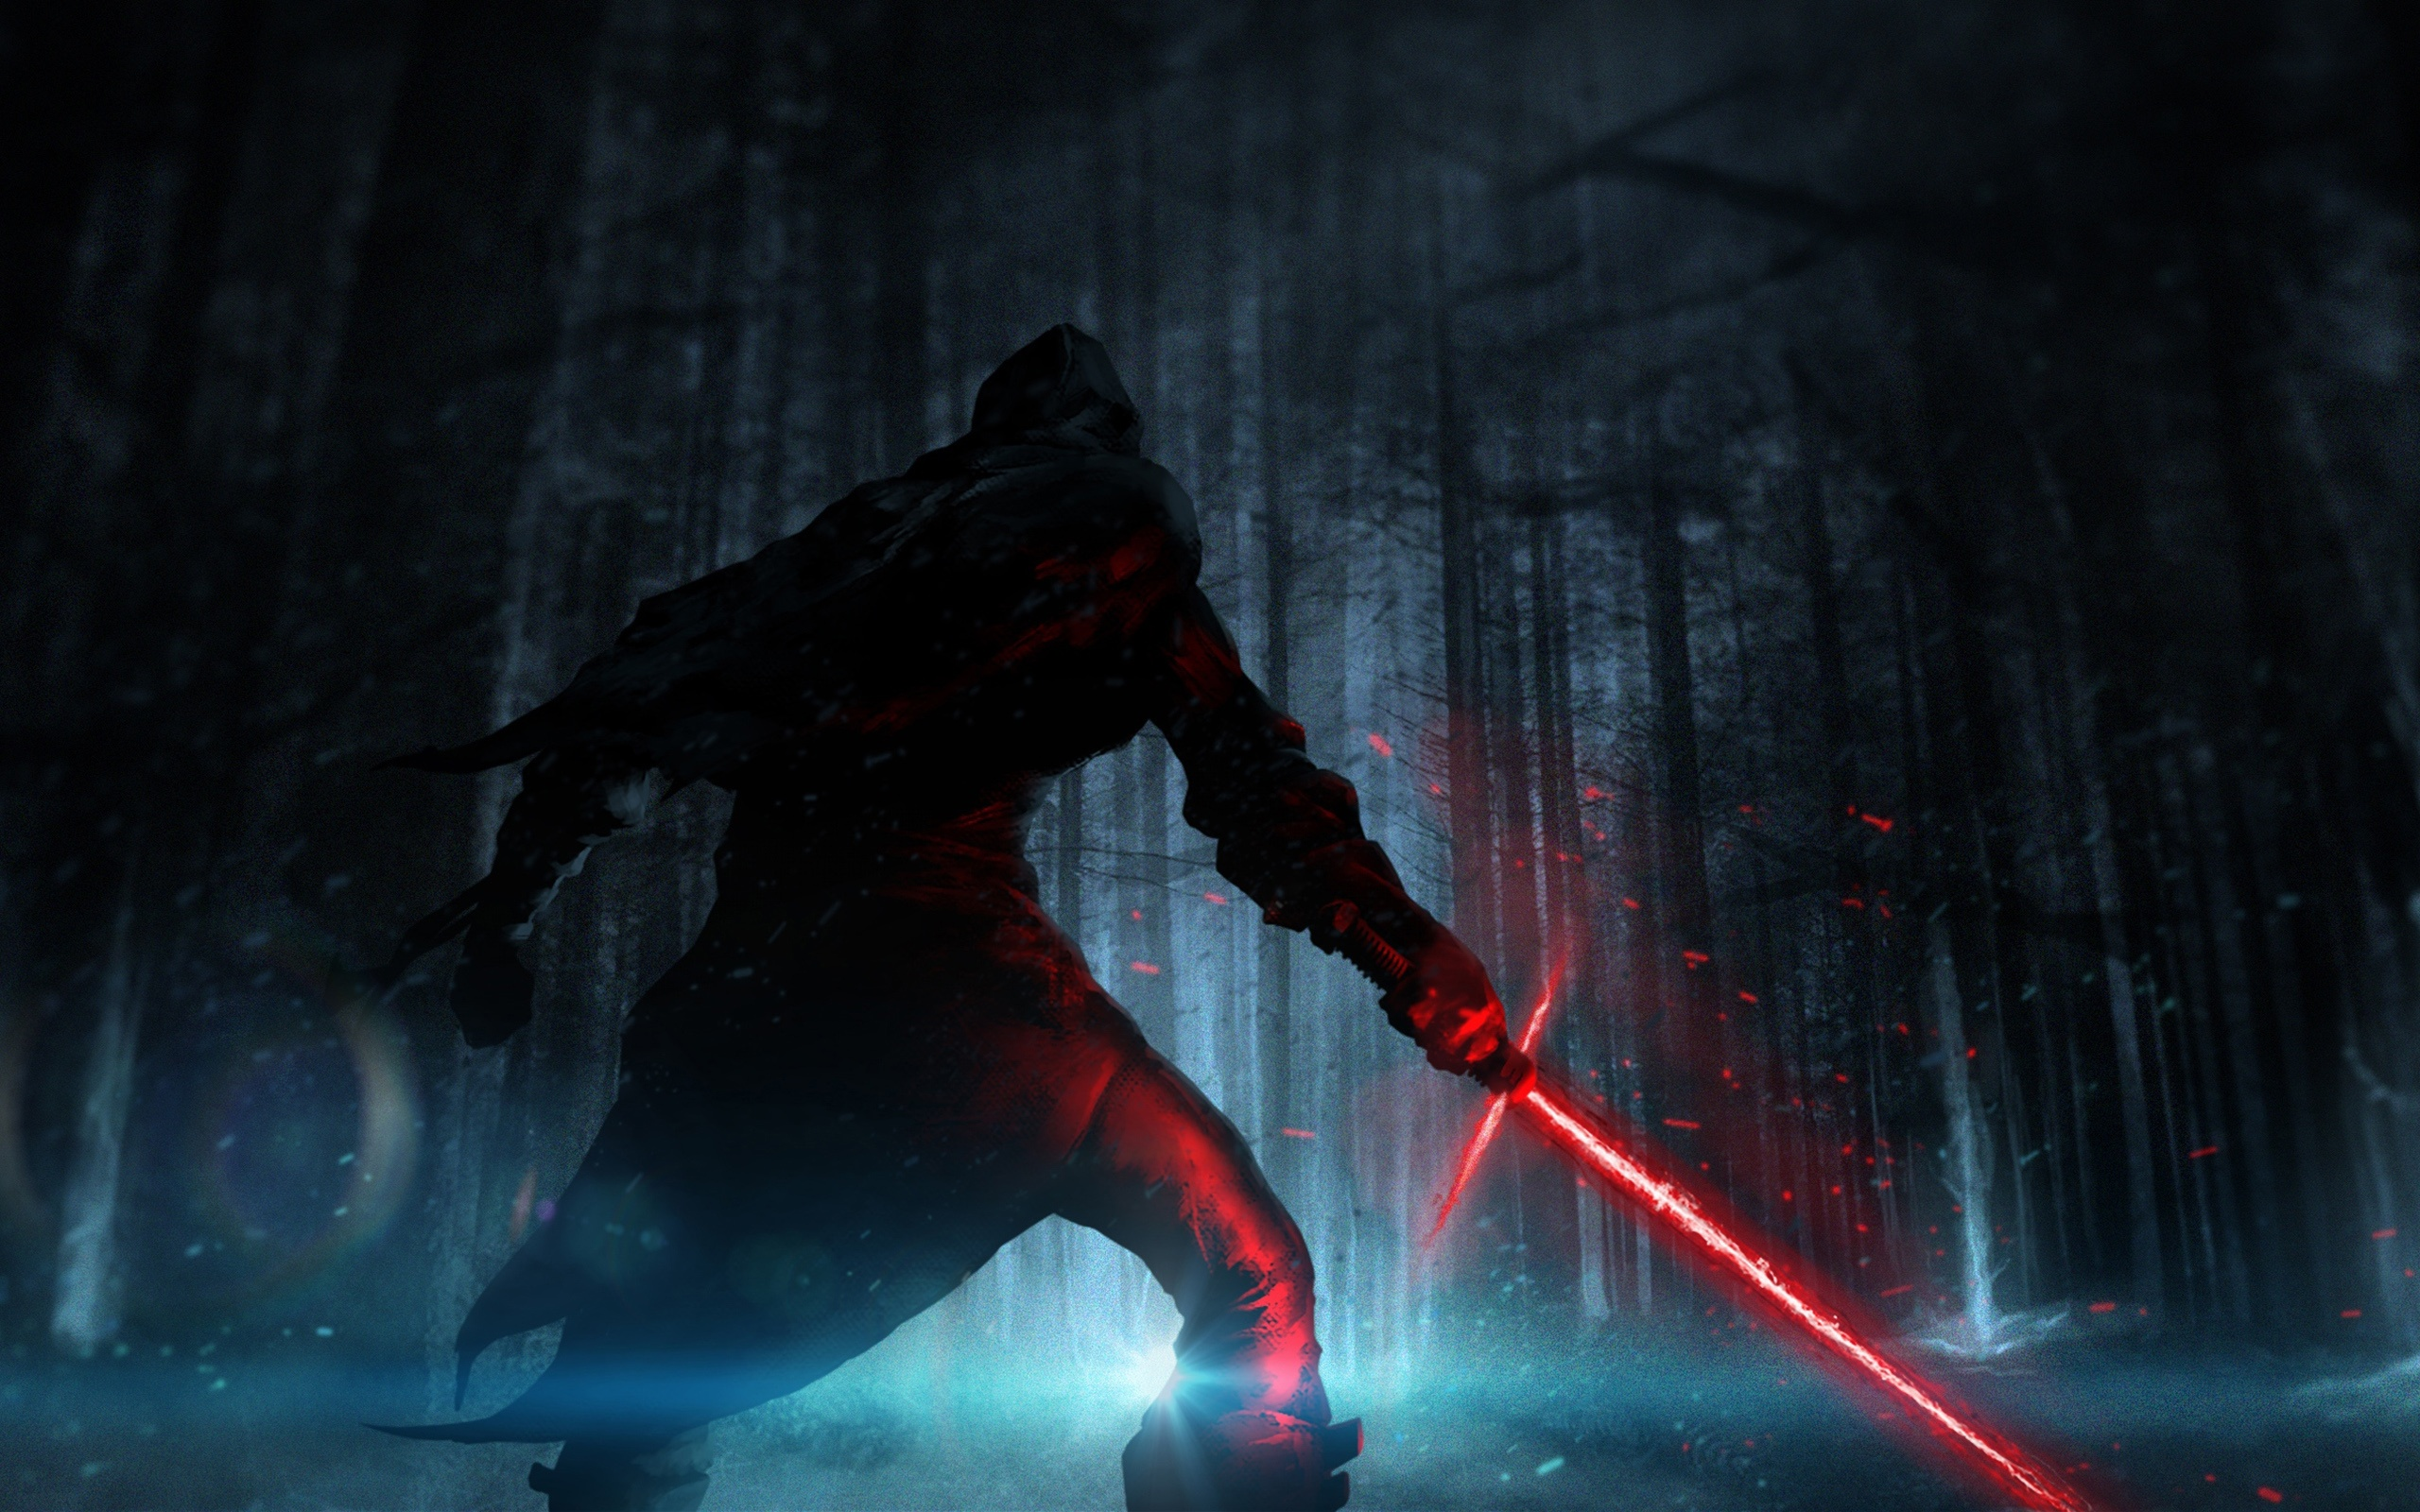 Star Wars Episode VII The Force Awakens Wallpapers HD Wallpapers 2560x1600